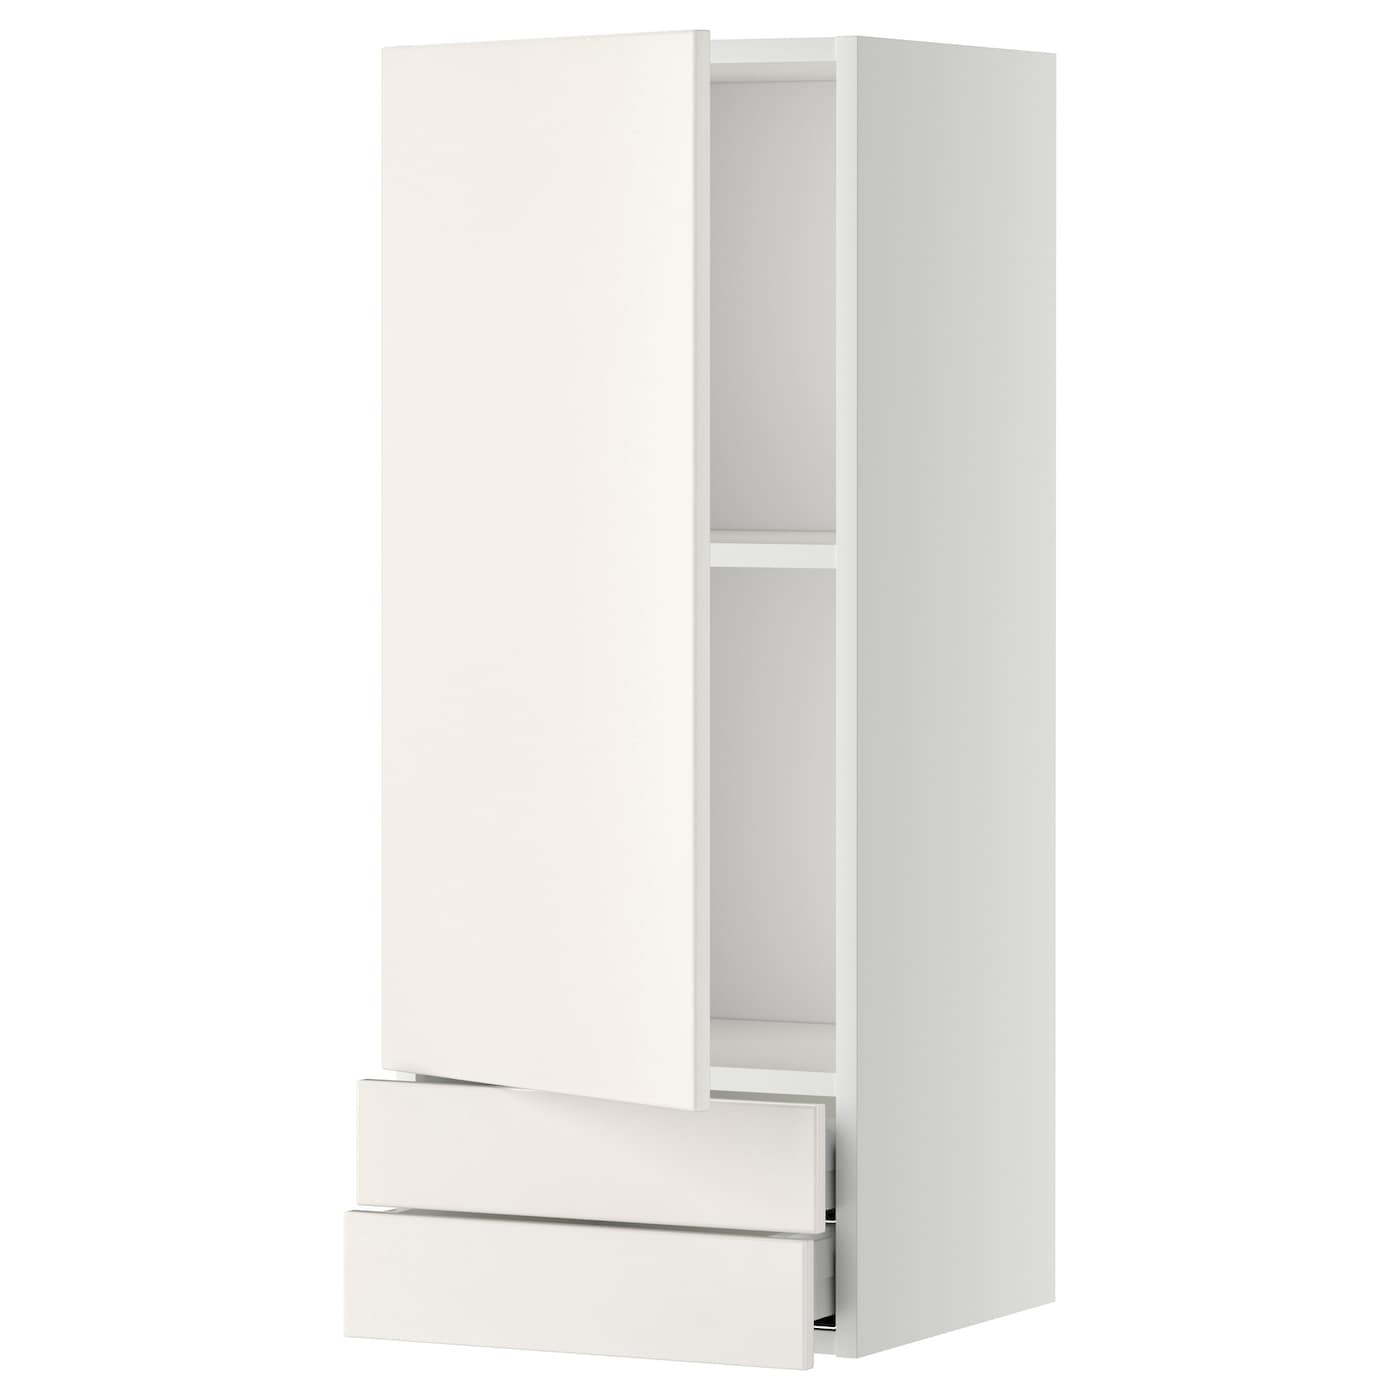 Ikea Veddinge White Kitchen: METOD/MAXIMERA Wall Cabinet With Door/2 Drawers White